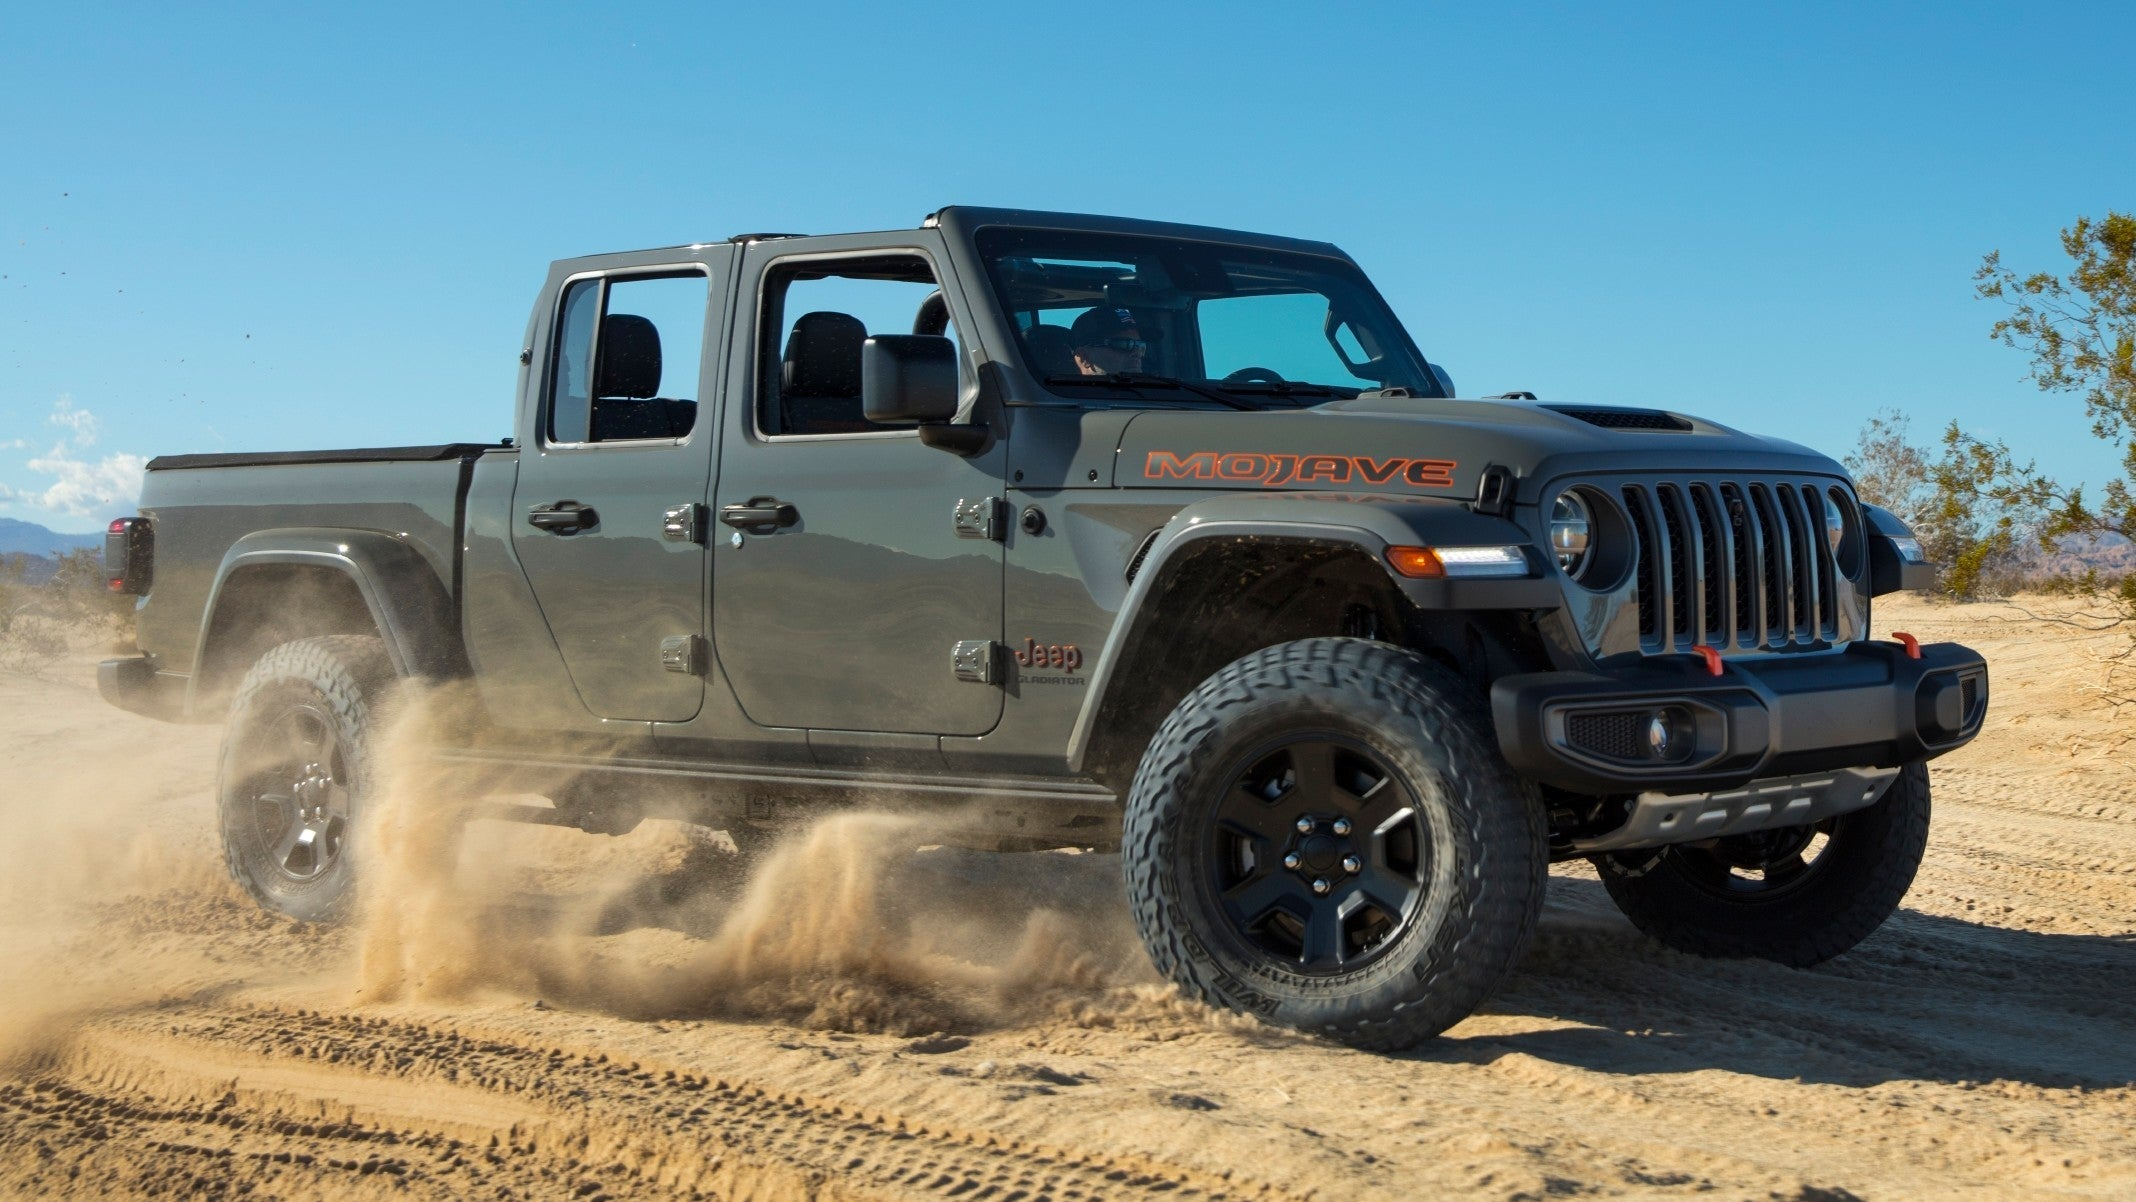 Here Are The Hardware Changes Behind The 2020 Jeep Gladiator Mojave's 'Desert Rated' Badge